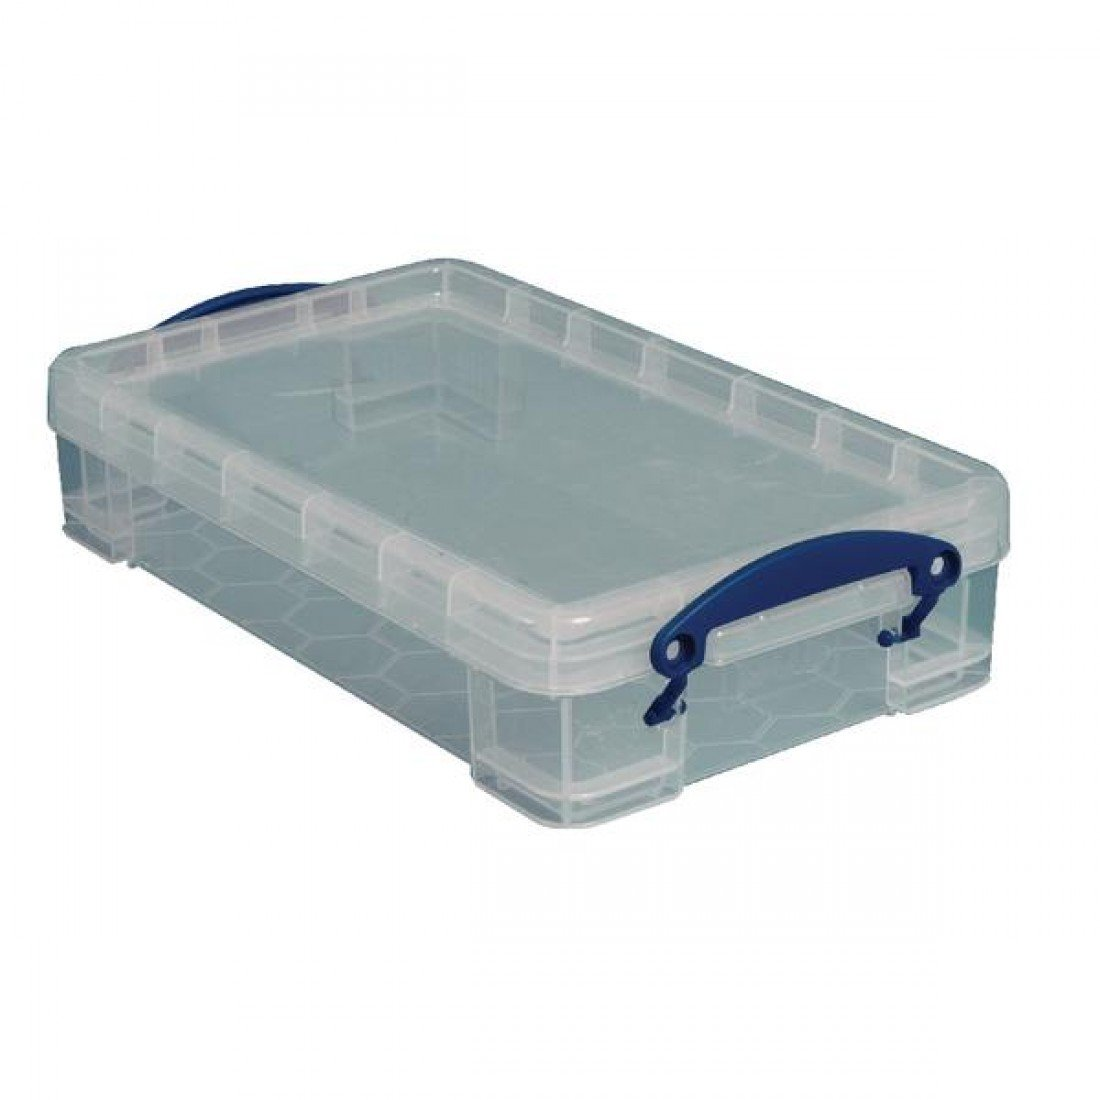 2.5 Liters Clear 13 3//8 x 8 x 2 3//4 Really Useful Box Plastic Storage Box